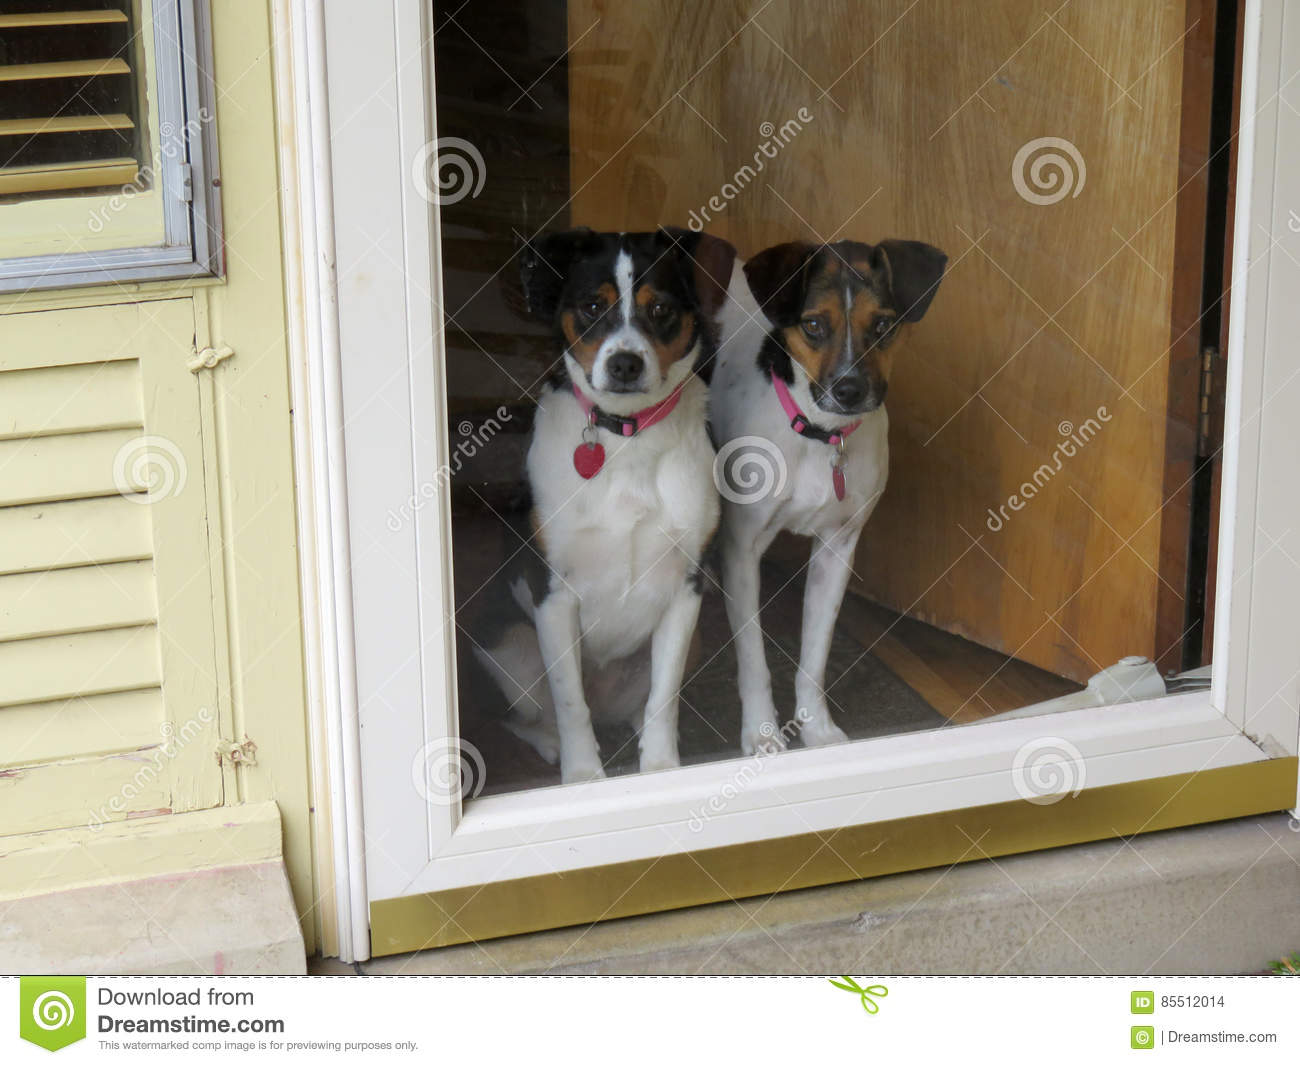 Dogs at the door